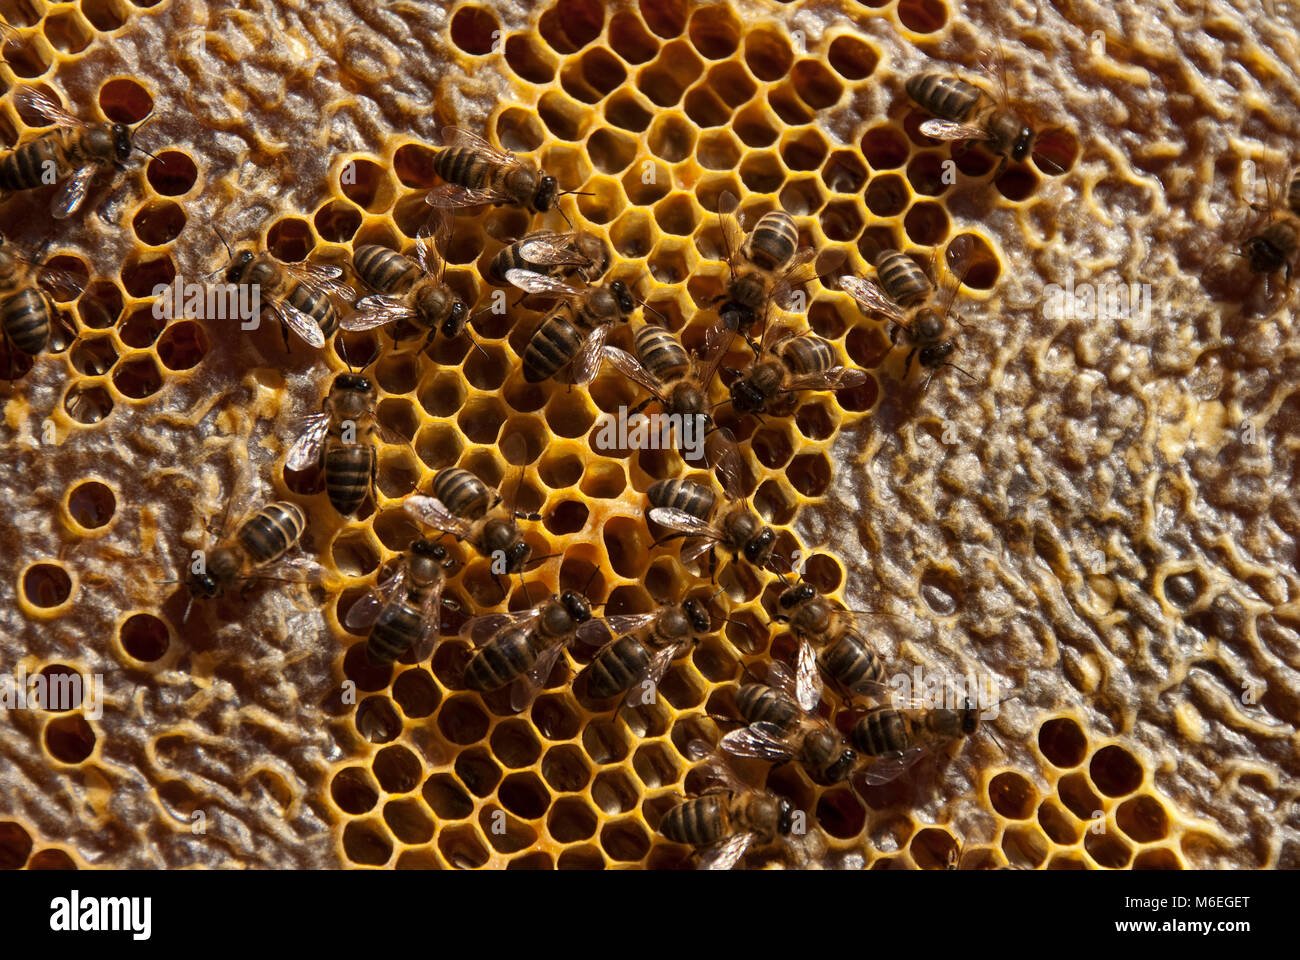 natural-honey-bees-honeycomb-with-cells-